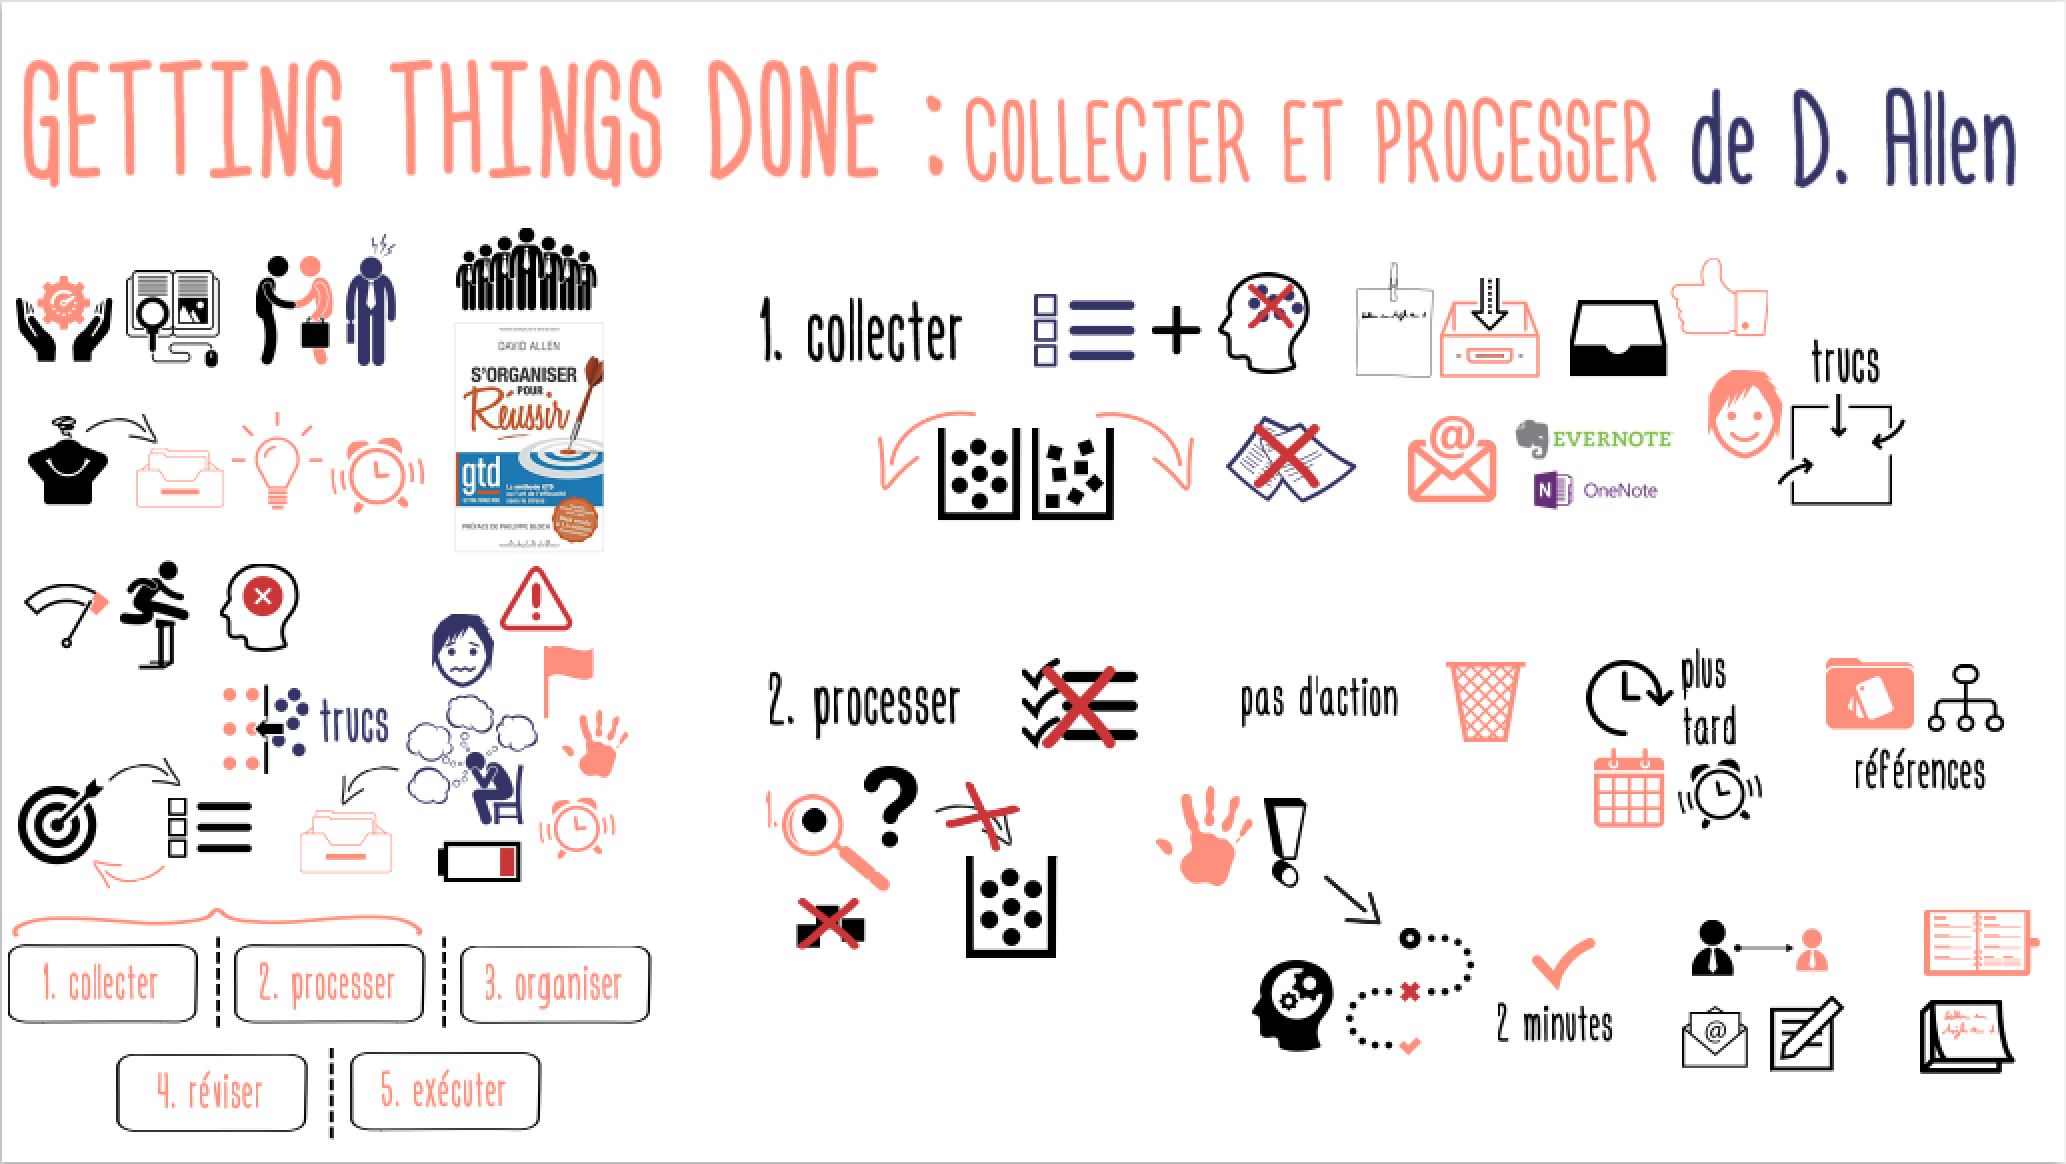 GettingThingsDone_CollecterProcesser